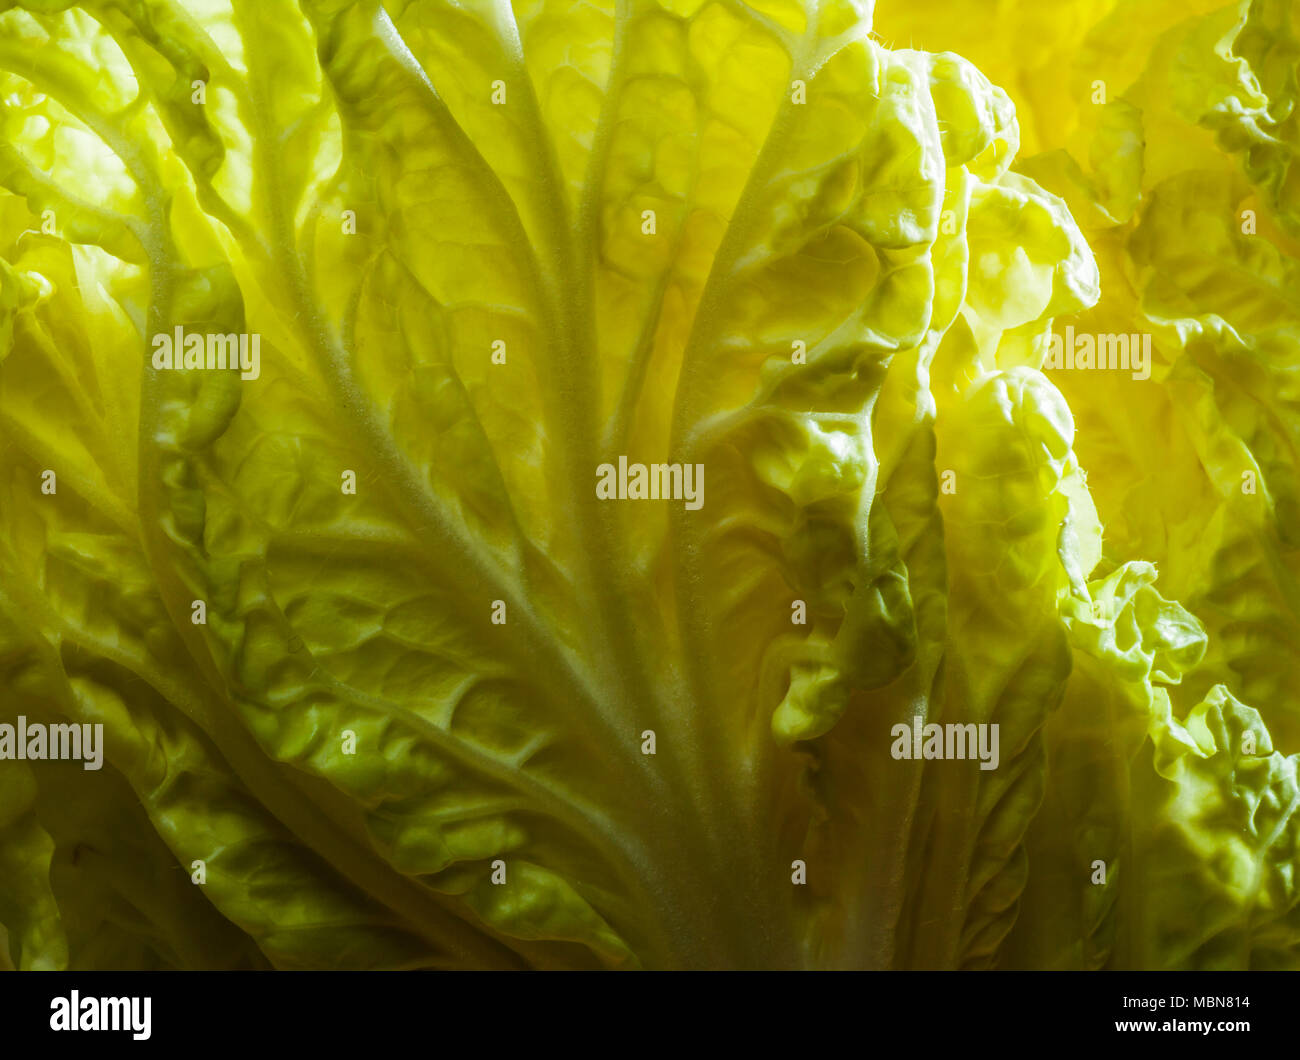 Studio still lifes of a head of Chinese head cabbage. - Stock Image